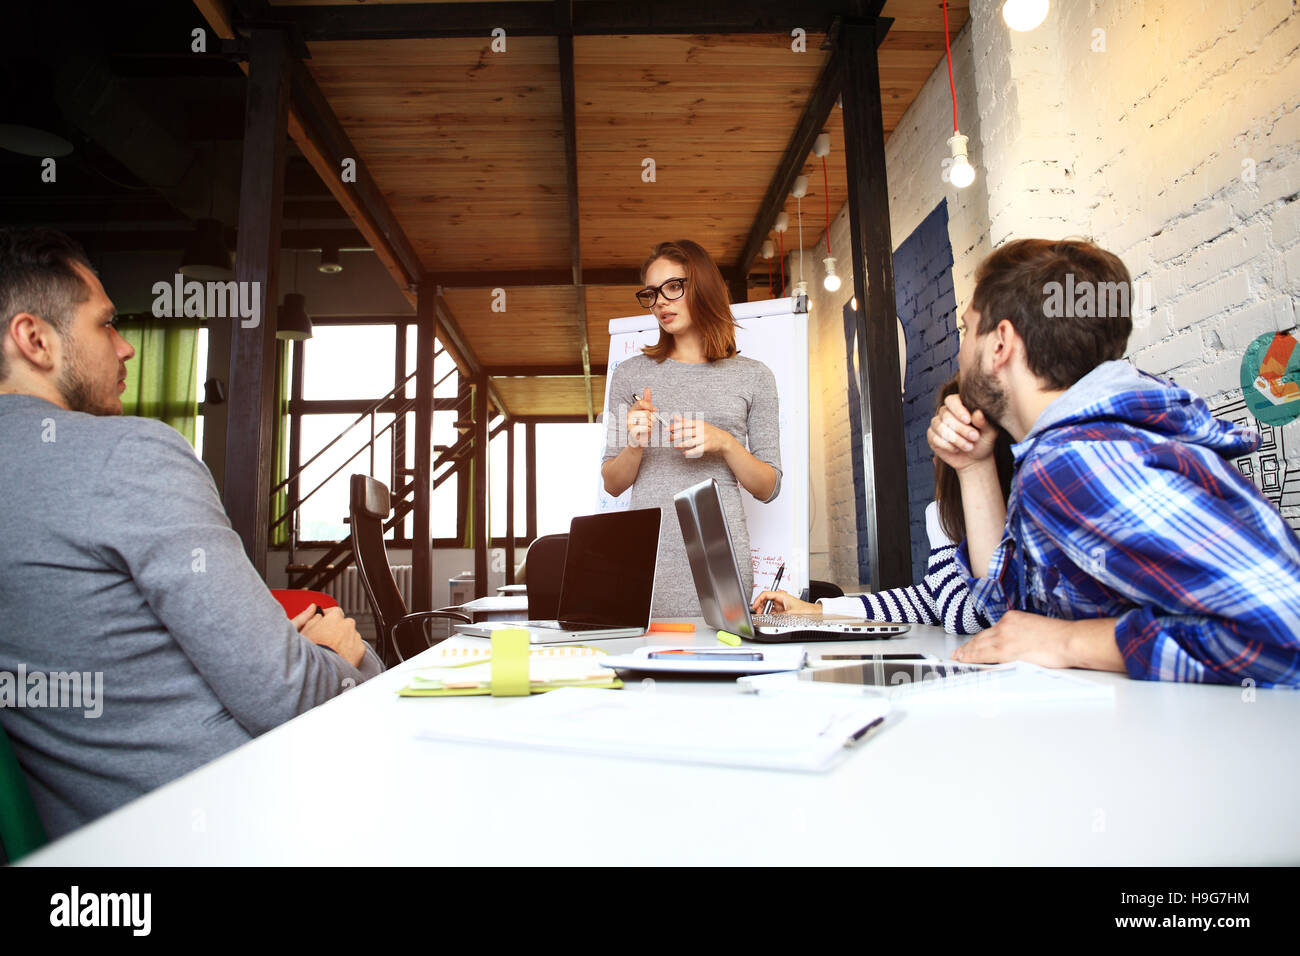 Team members listening attentively to a cheerful business woman holding a presentation. - Stock Image